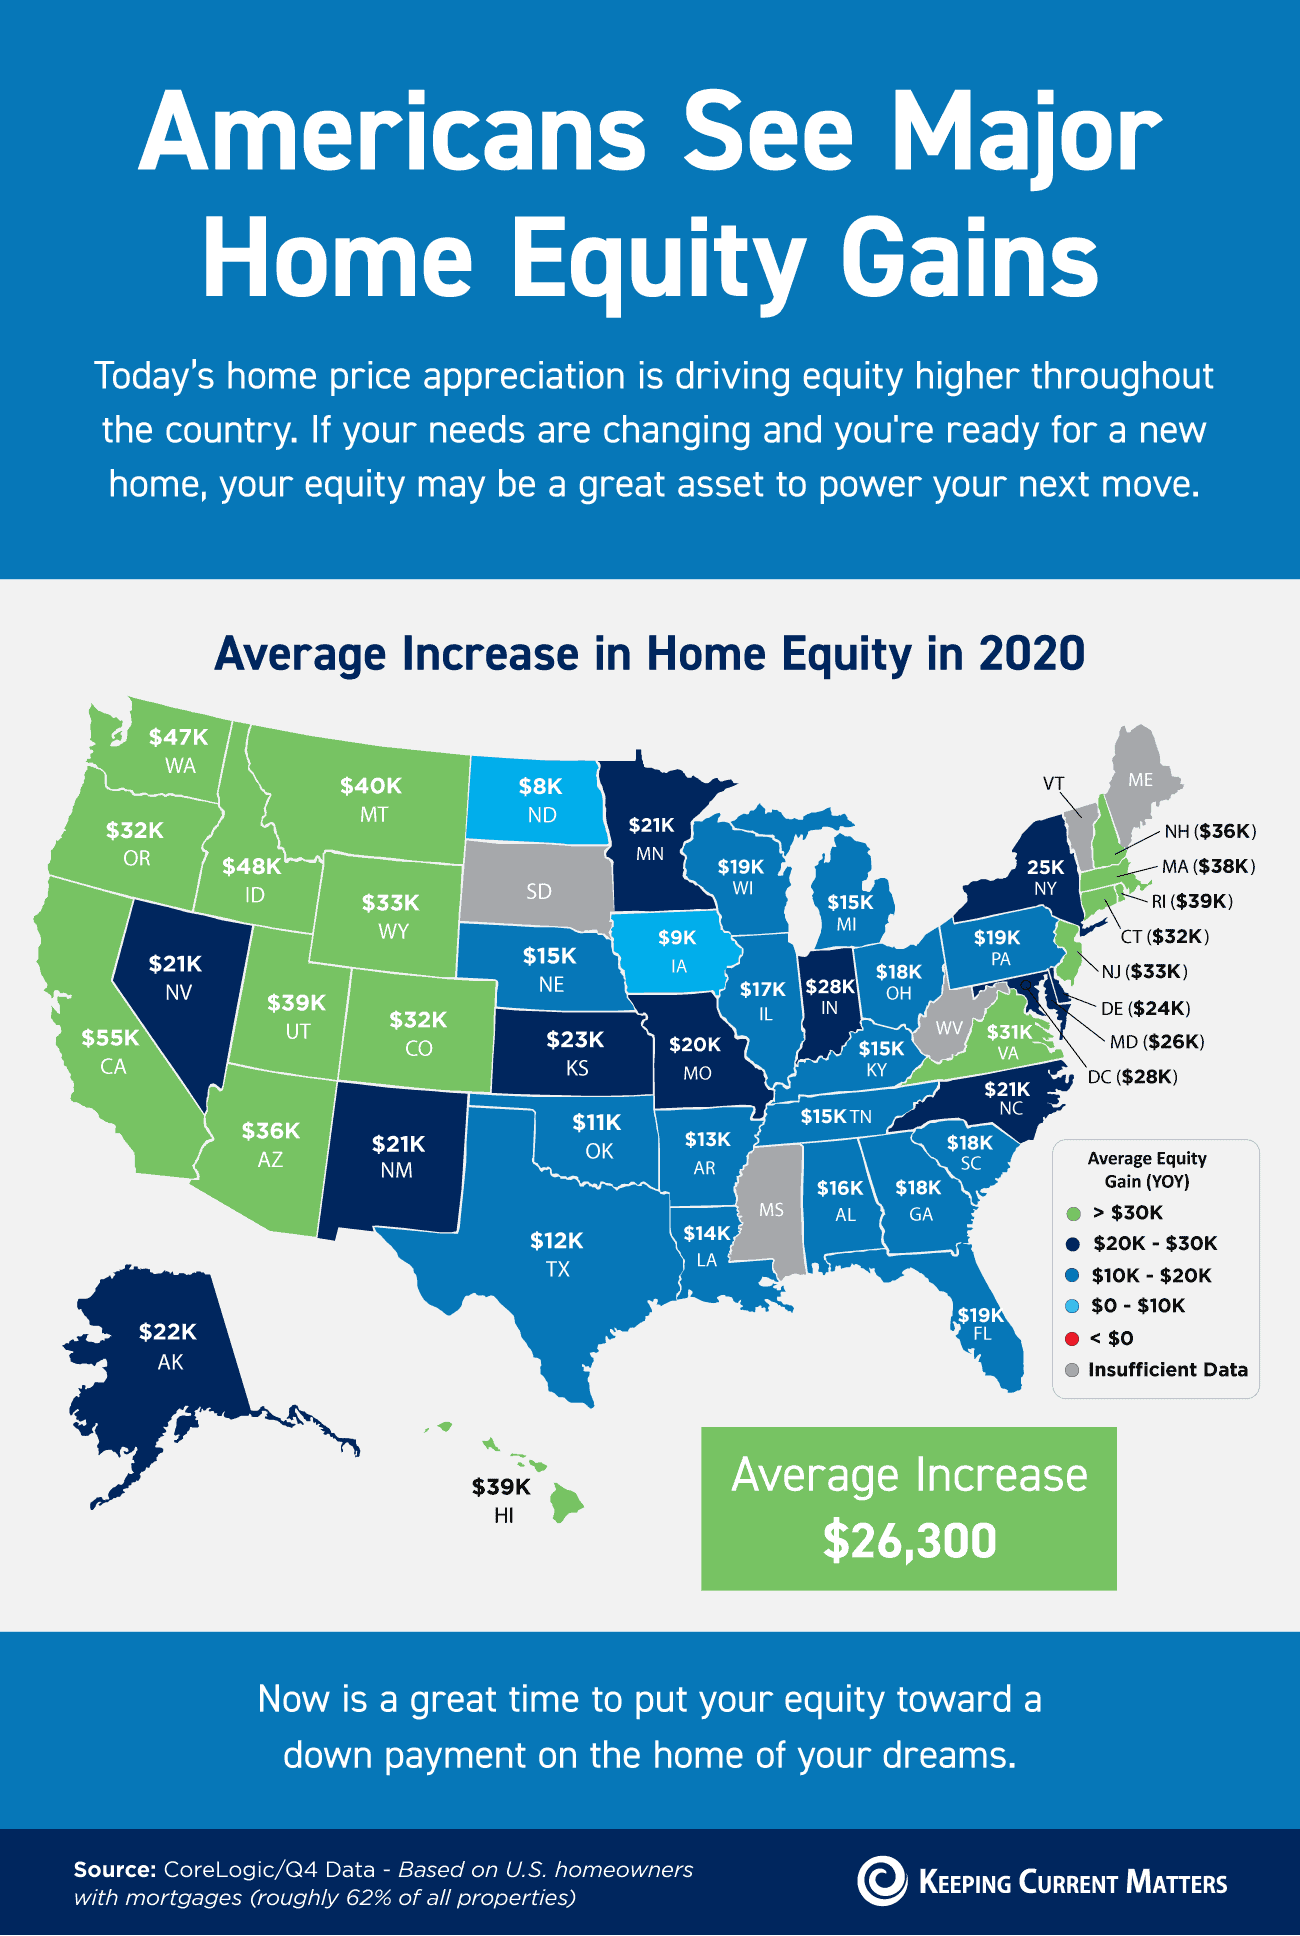 Americans See Major Home Equity Gains [INFOGRAPHIC] | Keeping Current Matters